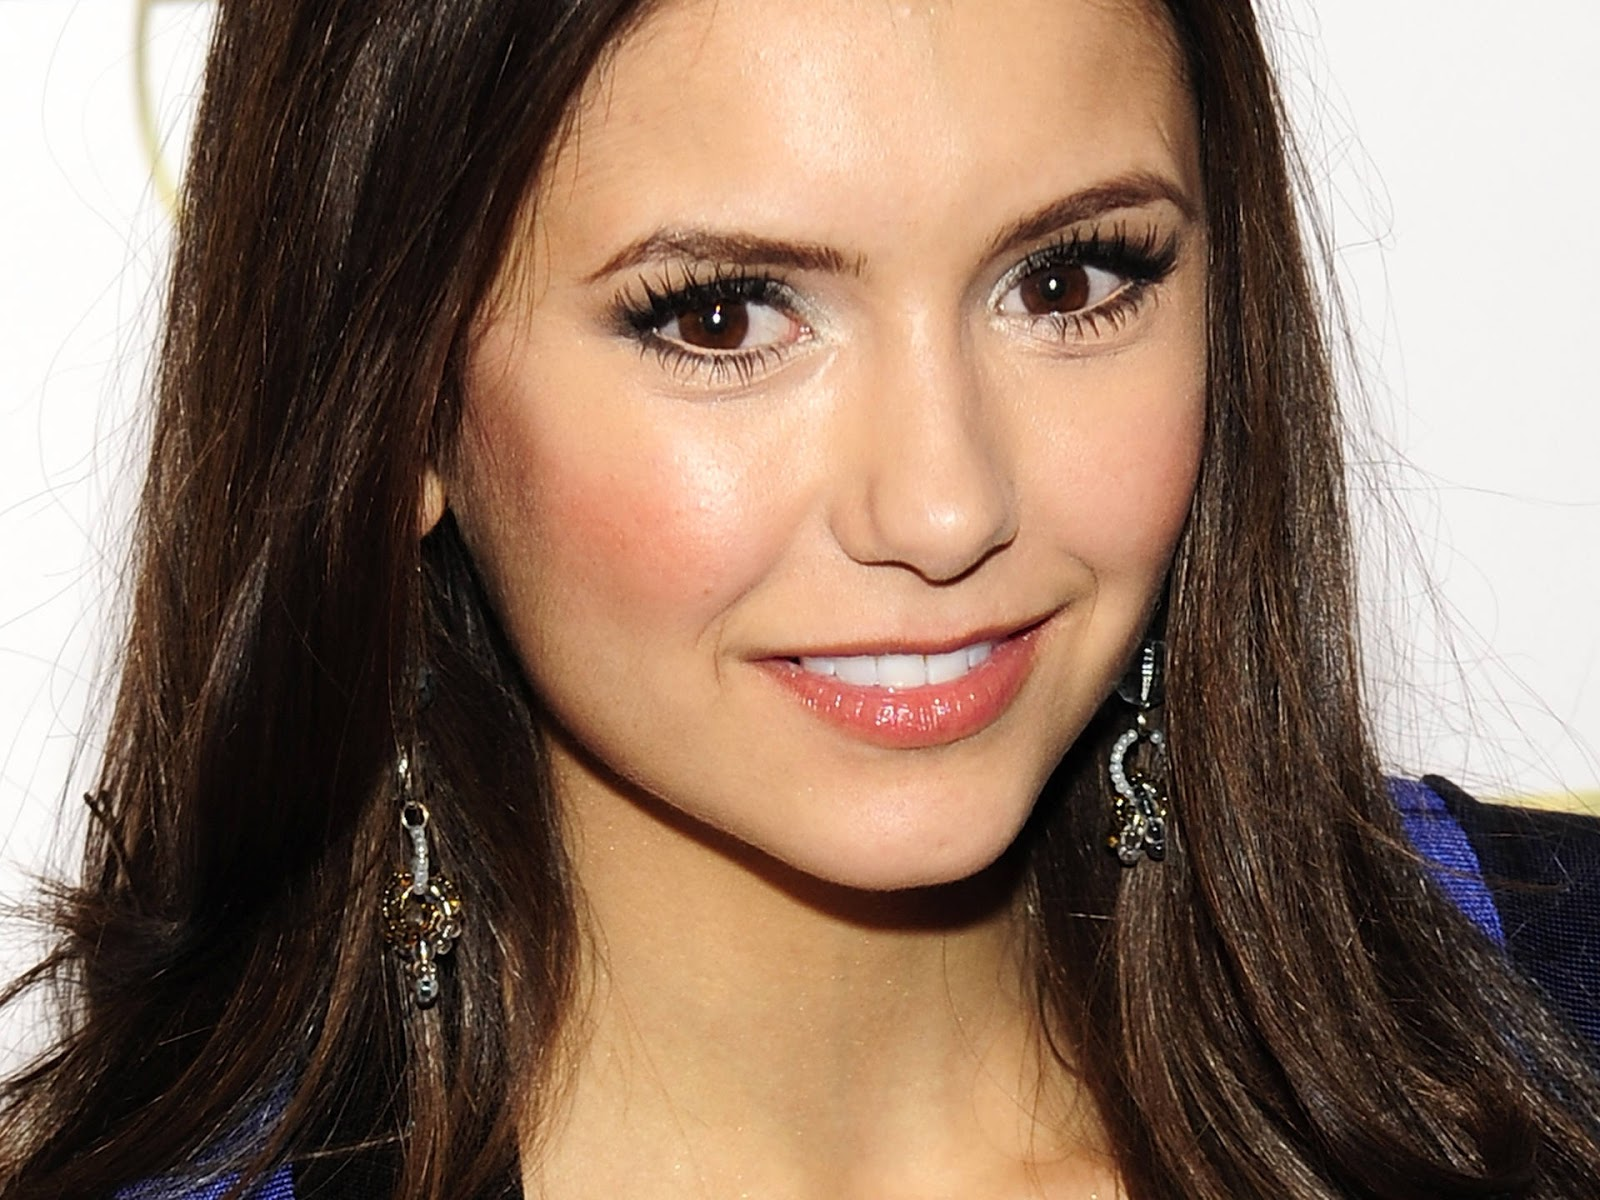 girls pictures Canadian actress pictures